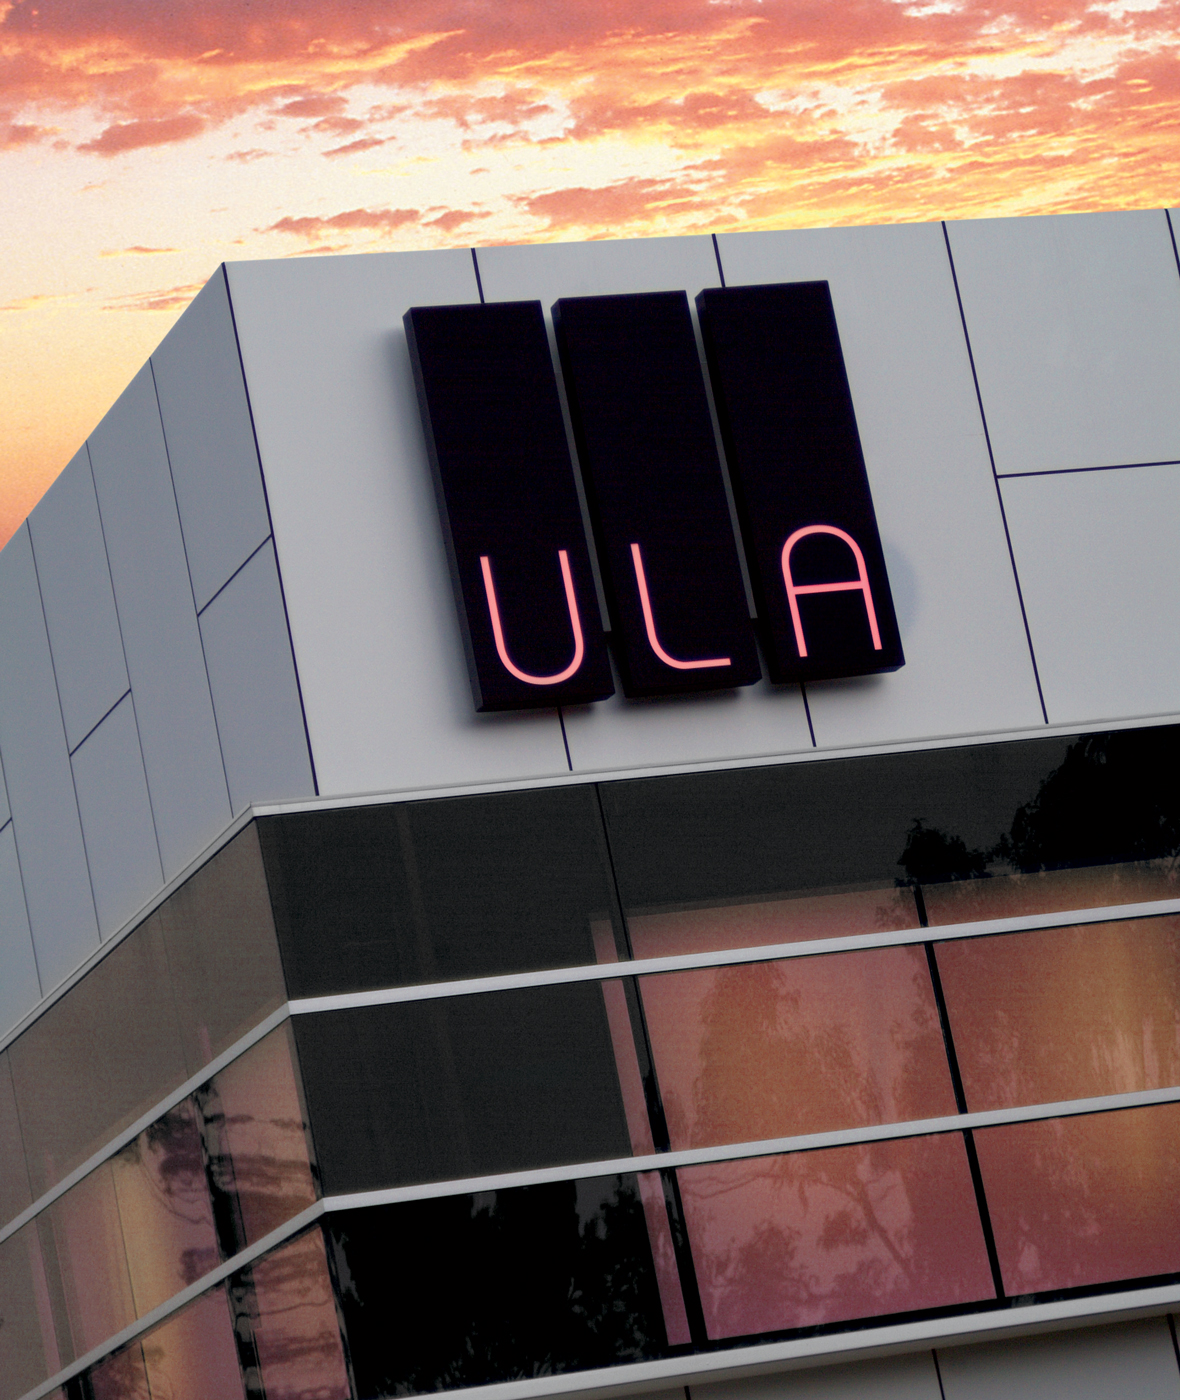 ULA Illuminated LED Building Sign at Sunset